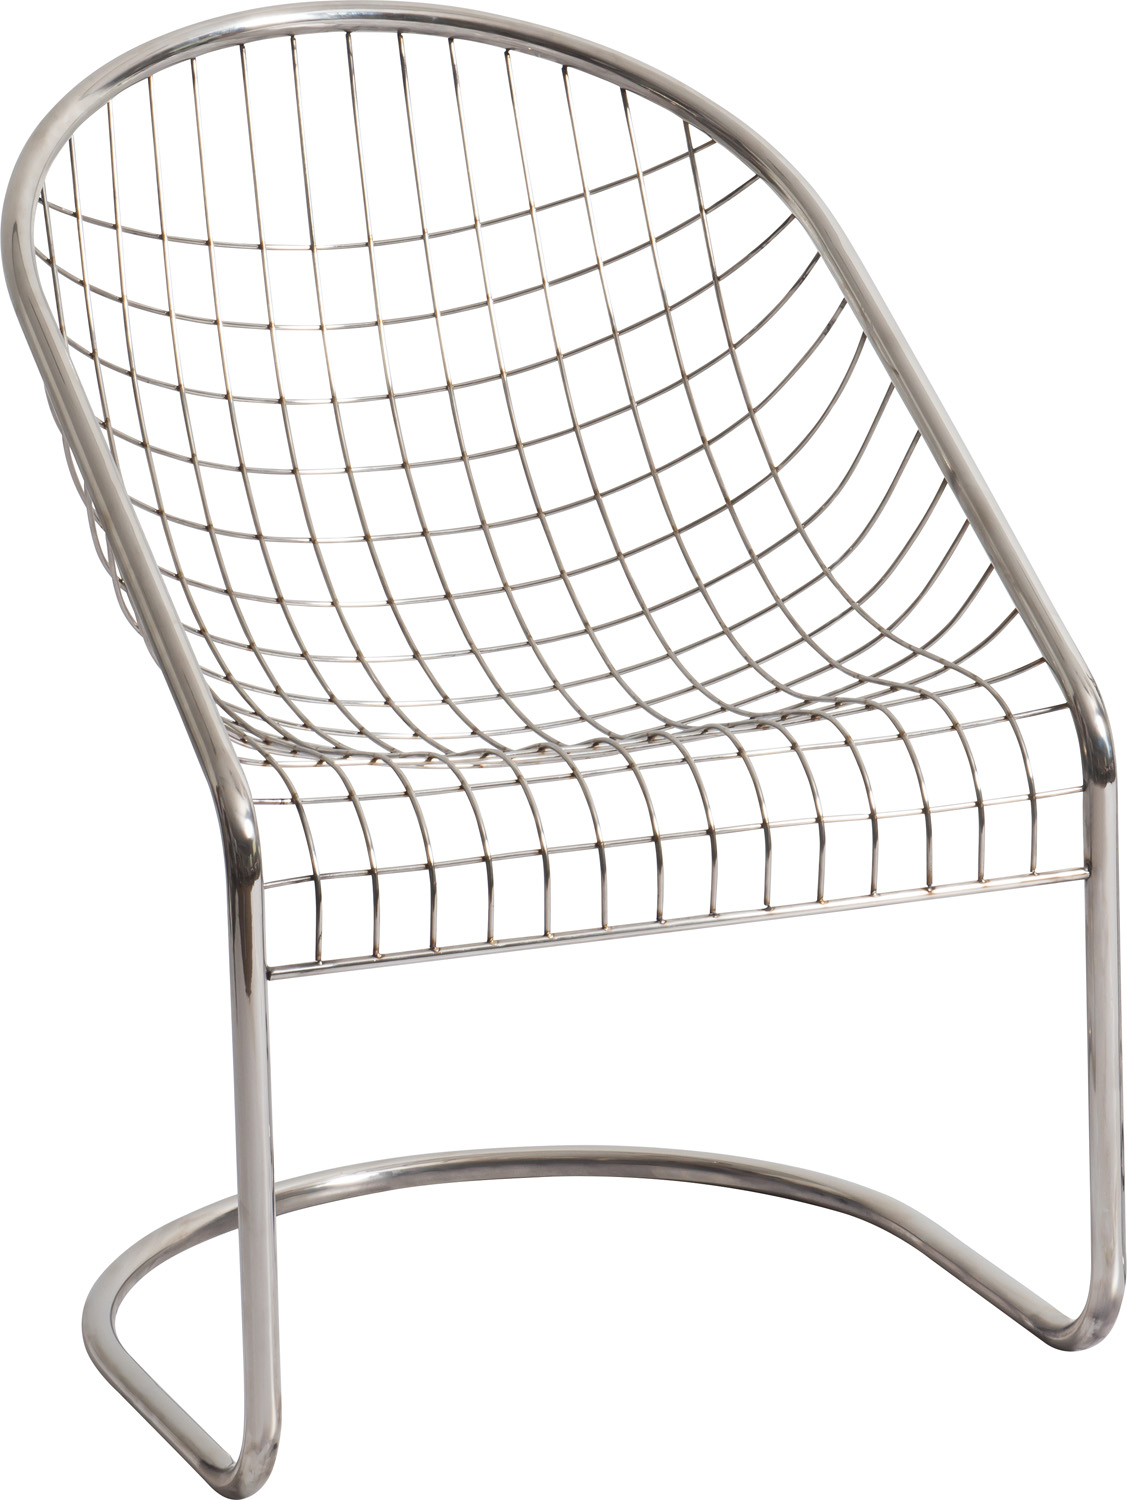 JSWMC-11  Cantilever Stainless Steel Wired Leisure Chair